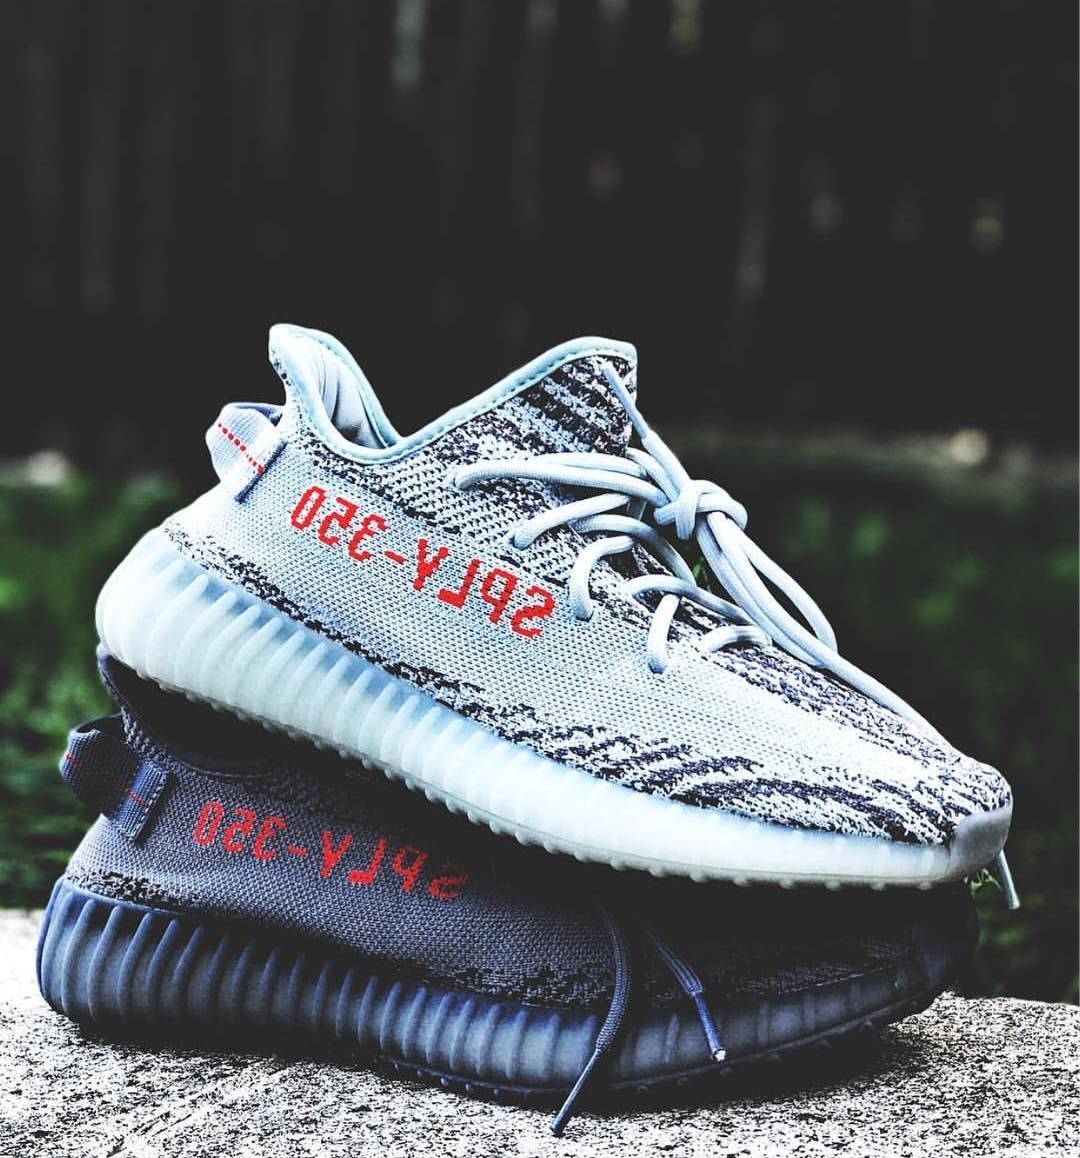 3b78d6869d4dc All Raffle Links For The Blue Tint Yeezy Boost 350 V2 (B37571)